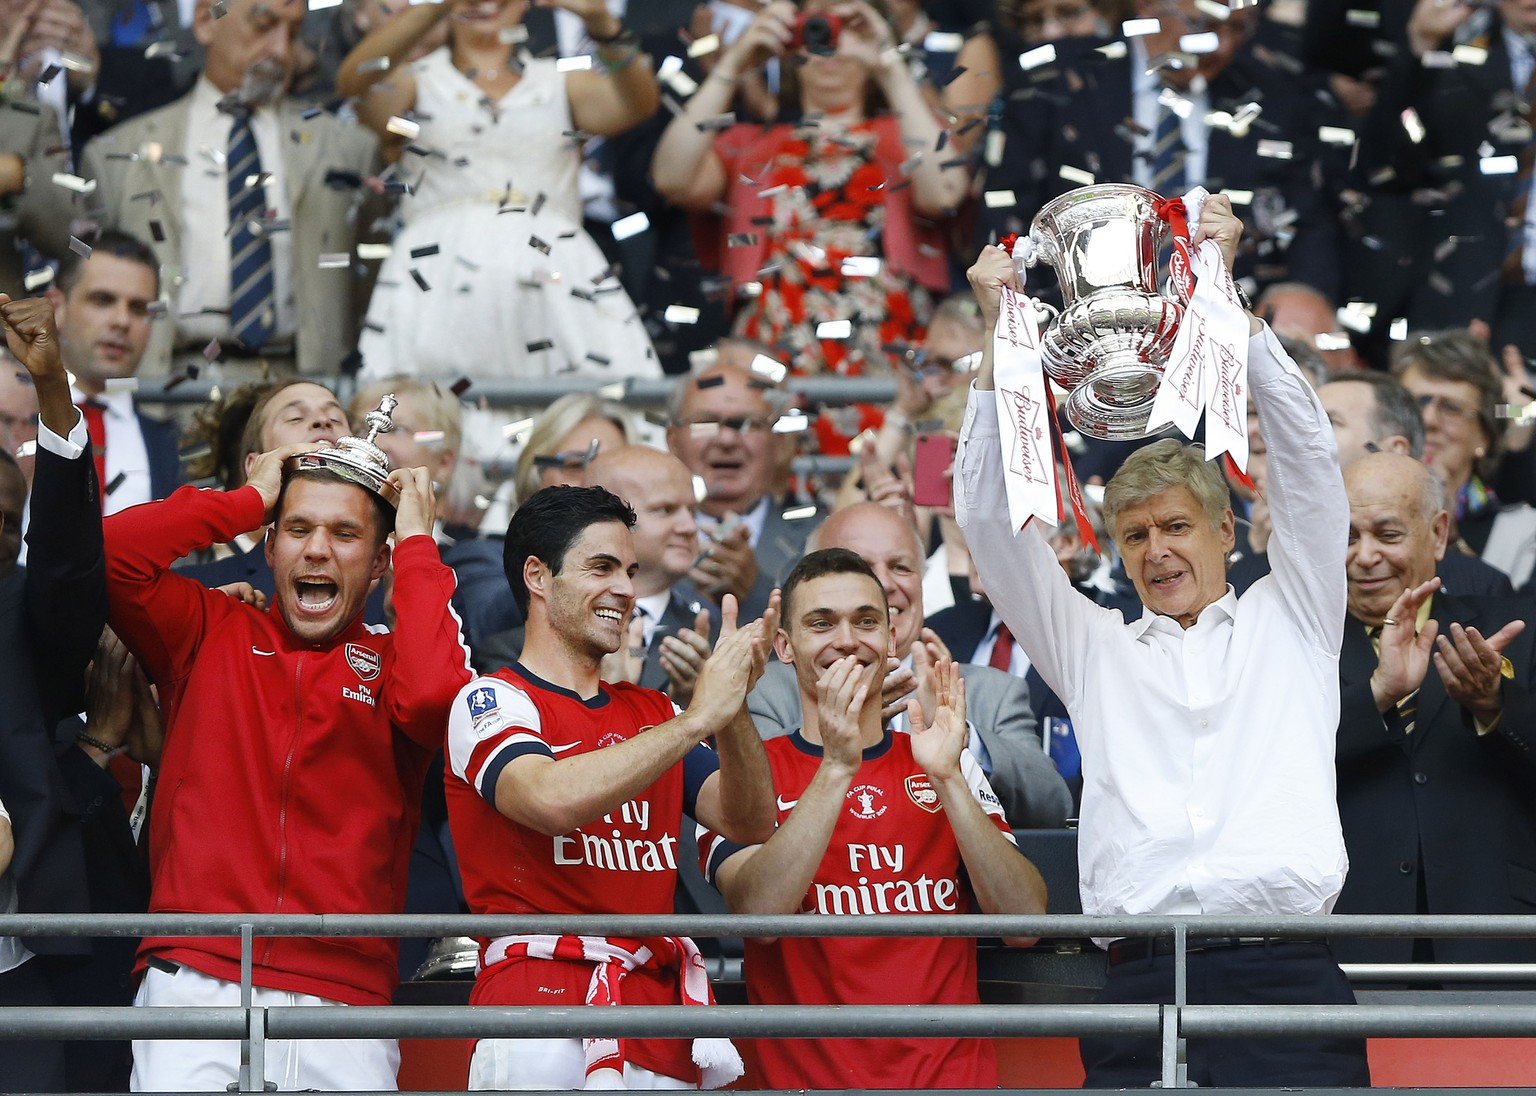 Arsenal's coach Arsene Wenger, right, hold the trophy aloft as he celebrates after his team won the English FA Cup final soccer match between Arsenal and Hull City at Wembley Stadium in London, Saturday, May 17, 2014. Arsenal won 3-2 after extra-time. (AP Photo/Kirsty Wigglesworth)